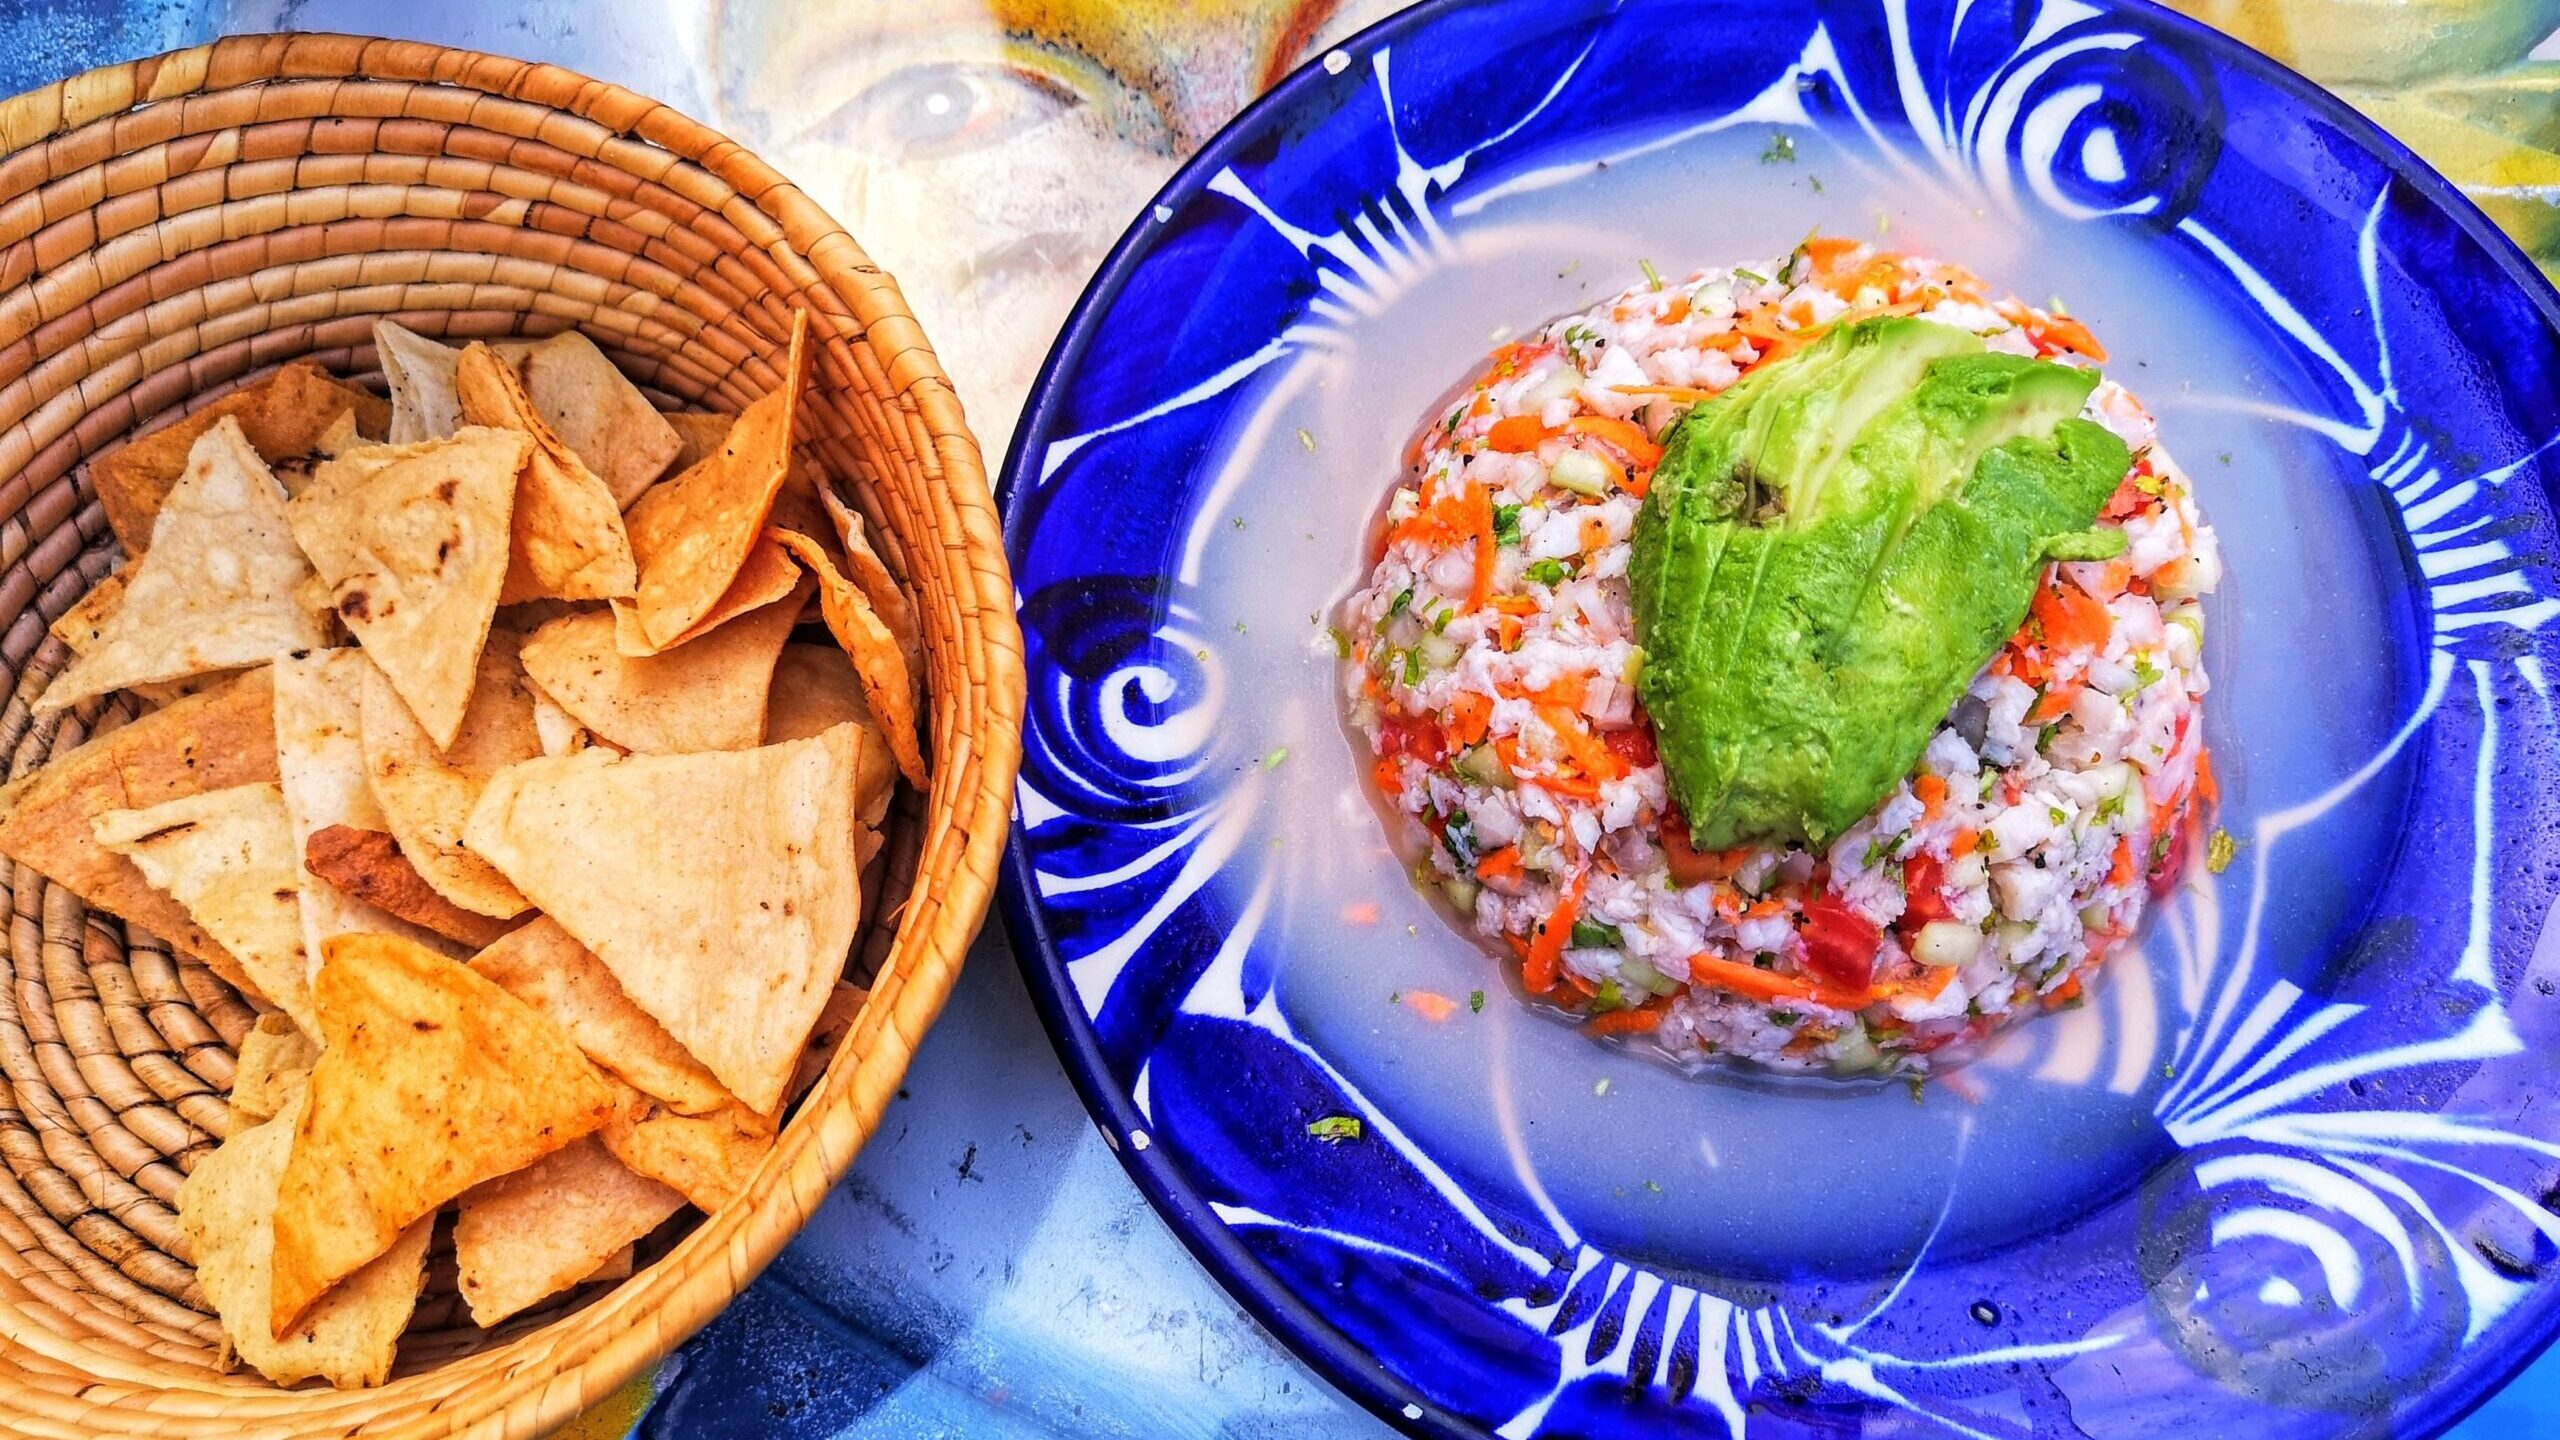 Beached: Sampling The Risky Pleasure Of Ceviche